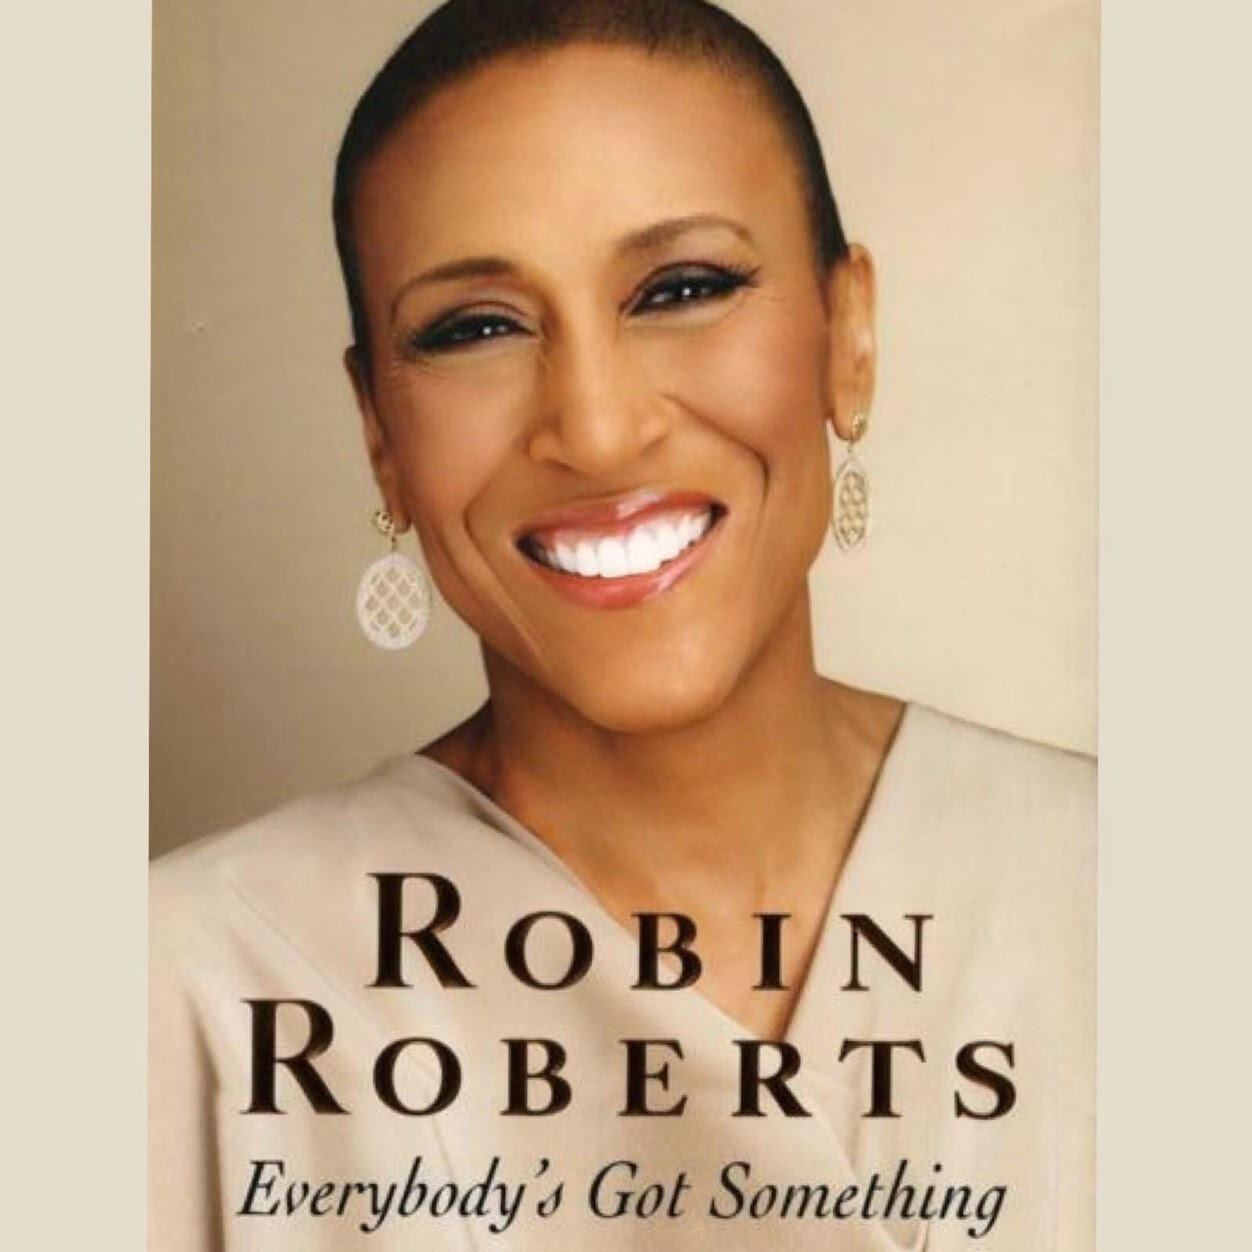 Everybodys Got Something Book Cover Art Robin Roberts